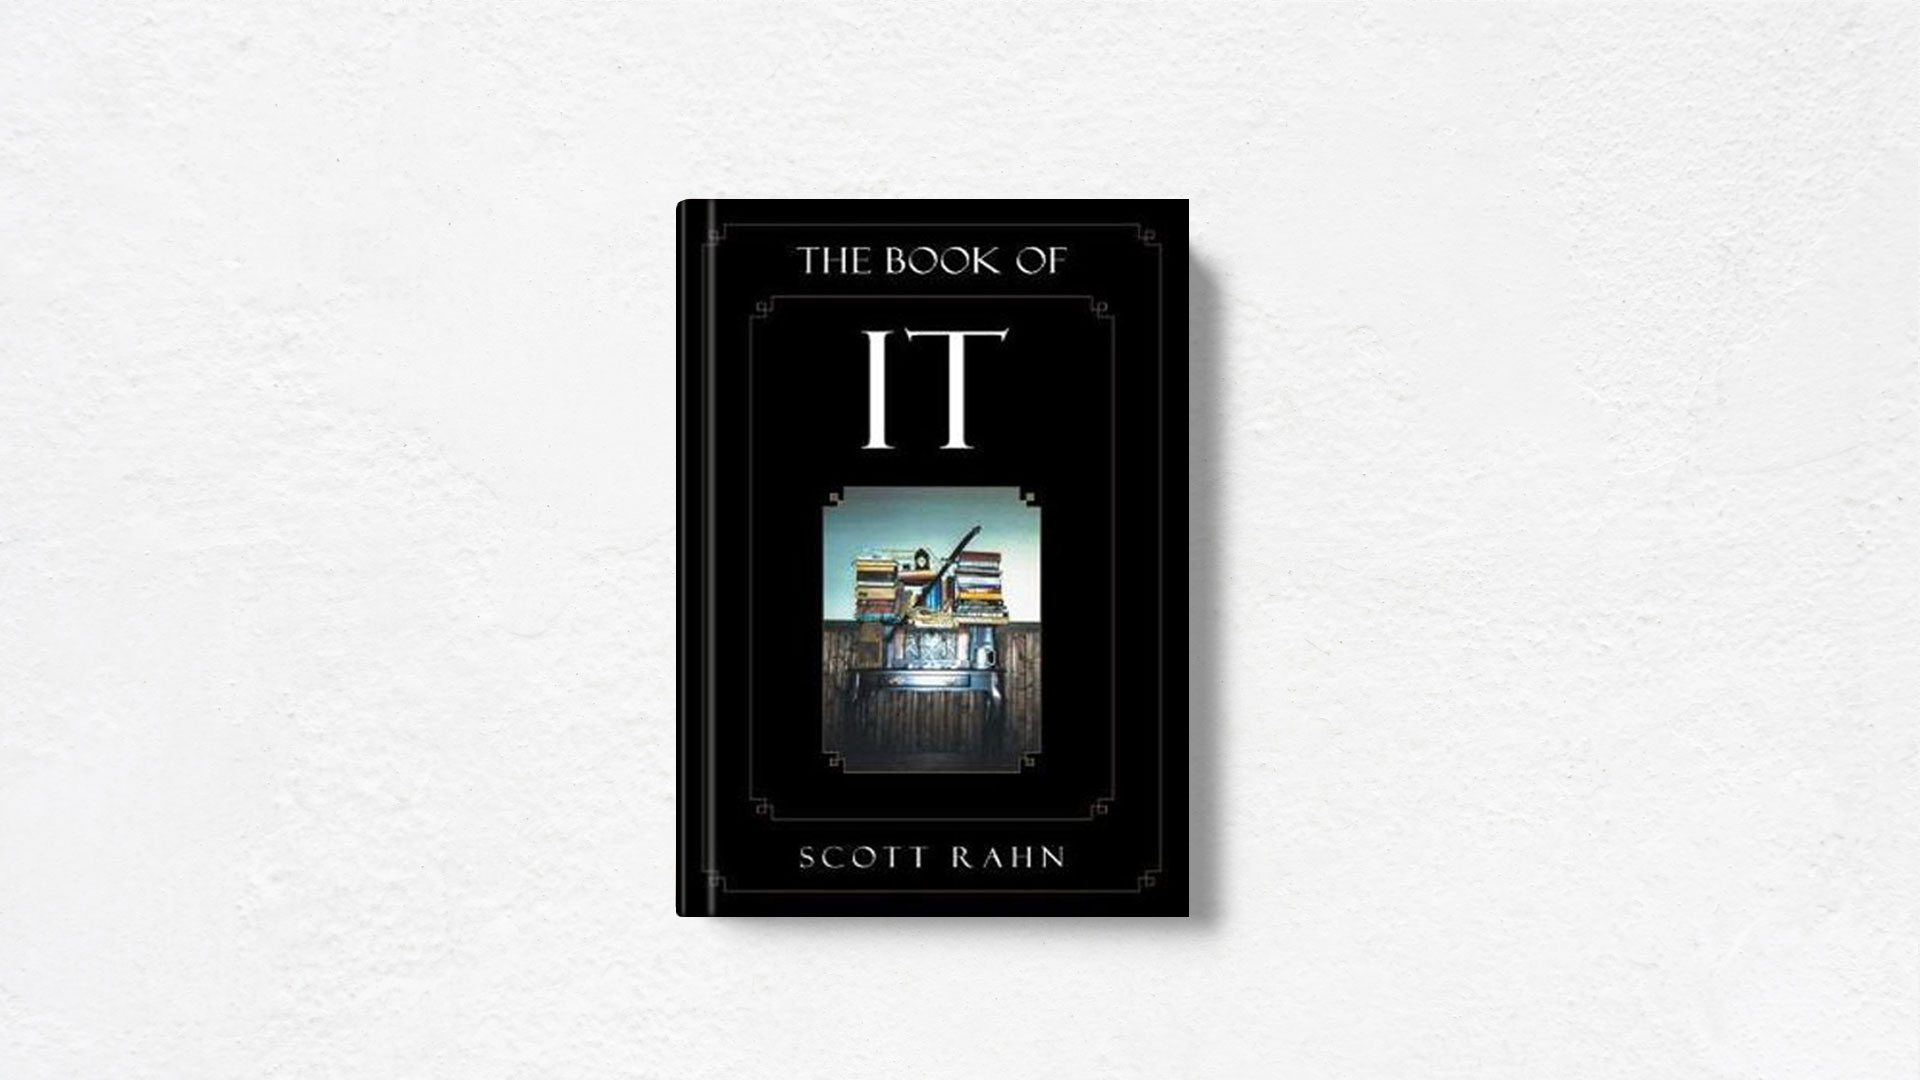 The-Book-Of-It-by-Richard-Scott-Rahn book cover and white background